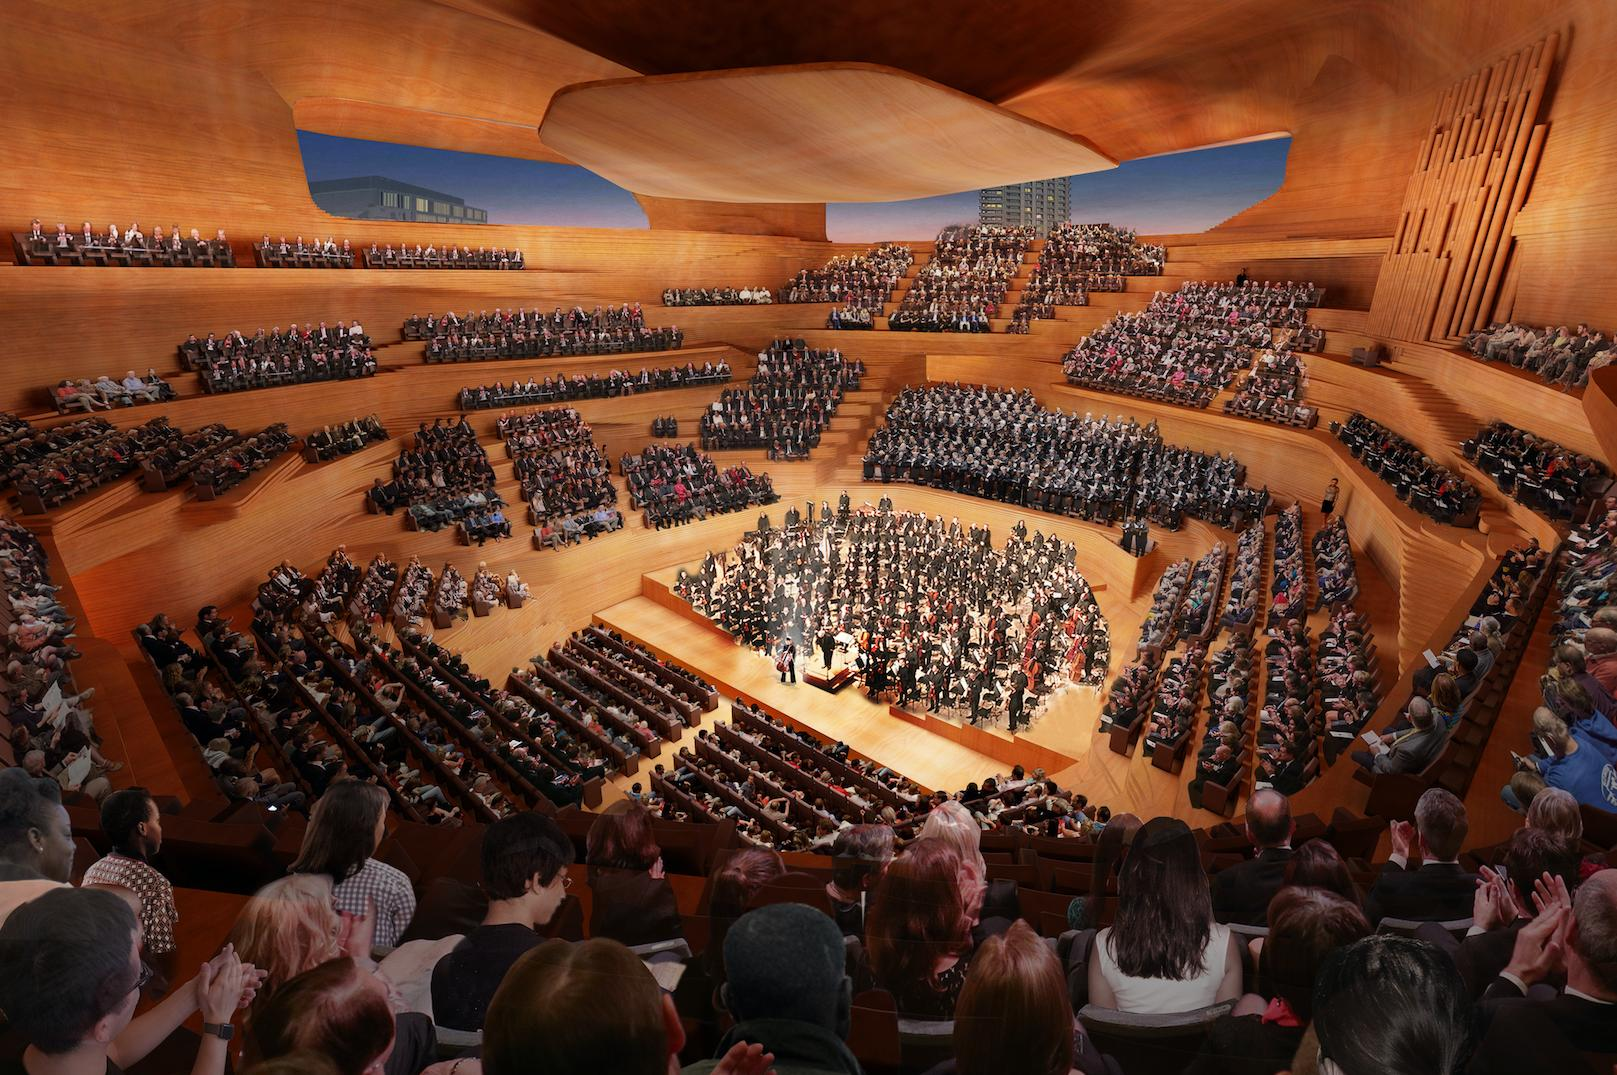 Design for new London concert hall